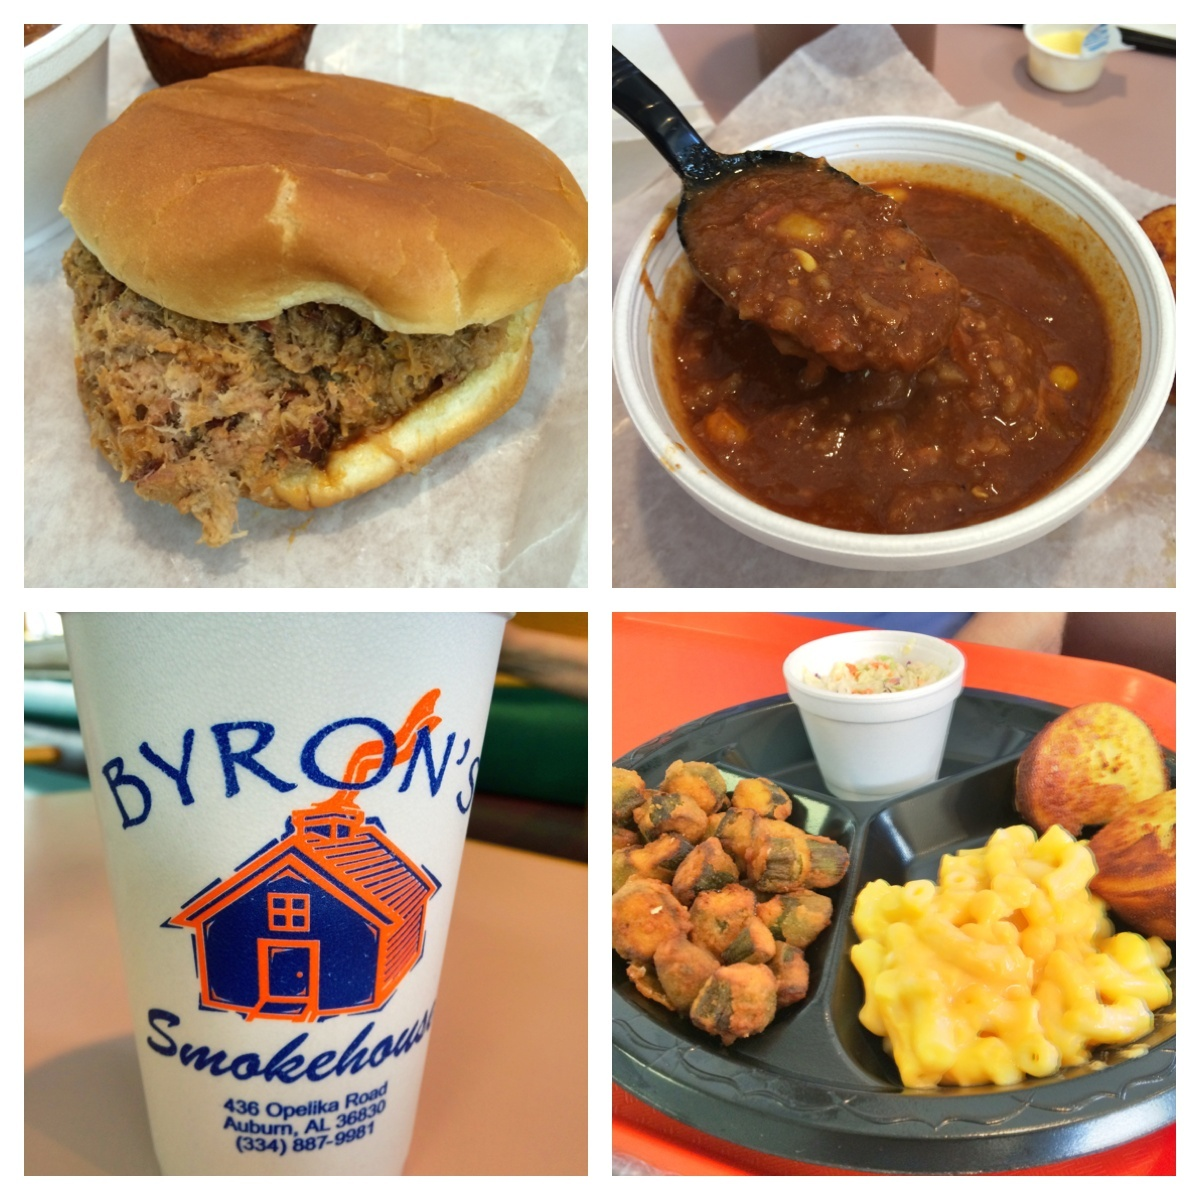 My favorite BBQ joint is Byron's.